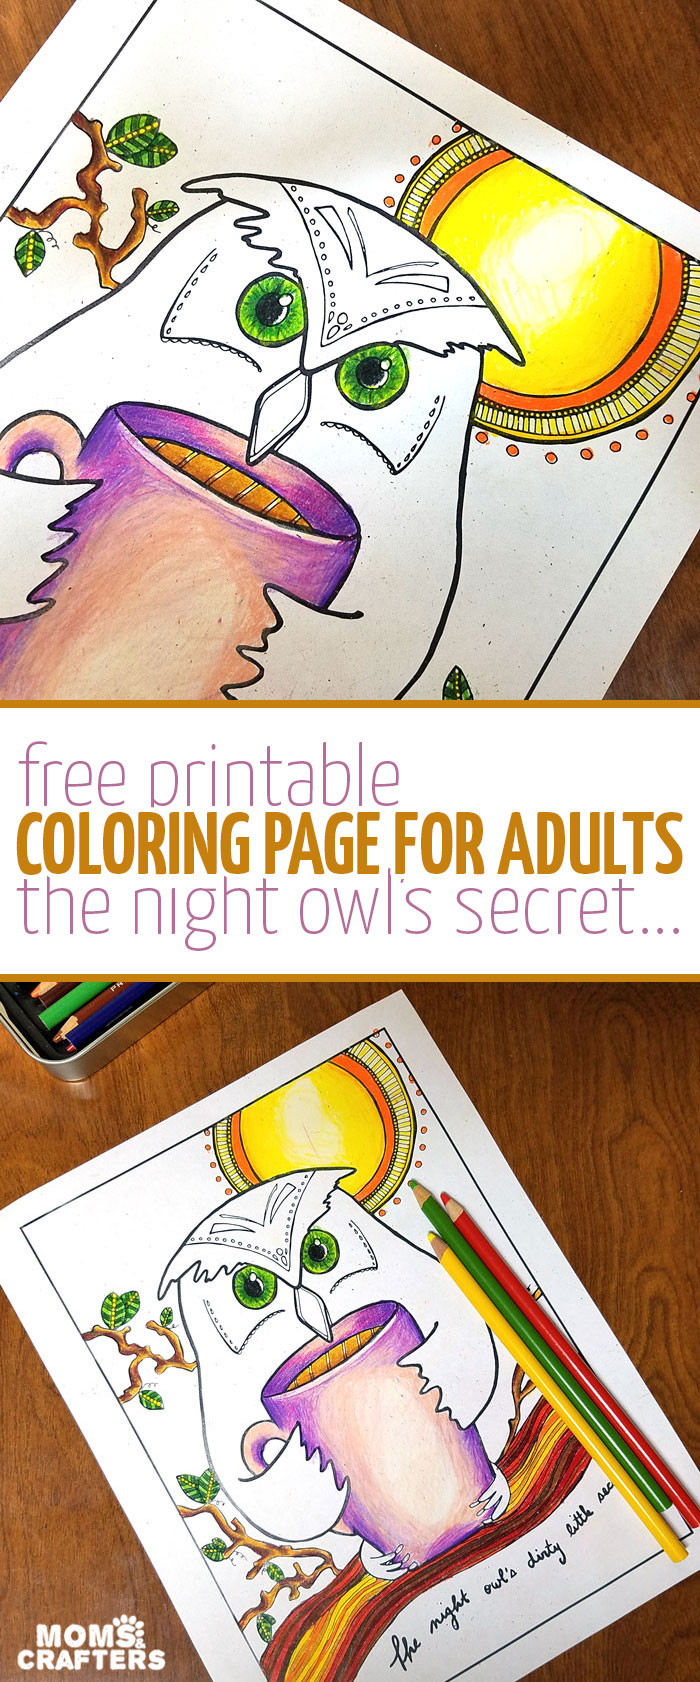 Free Printable Night Owl Coloring Page for Adults - Moms and Crafters